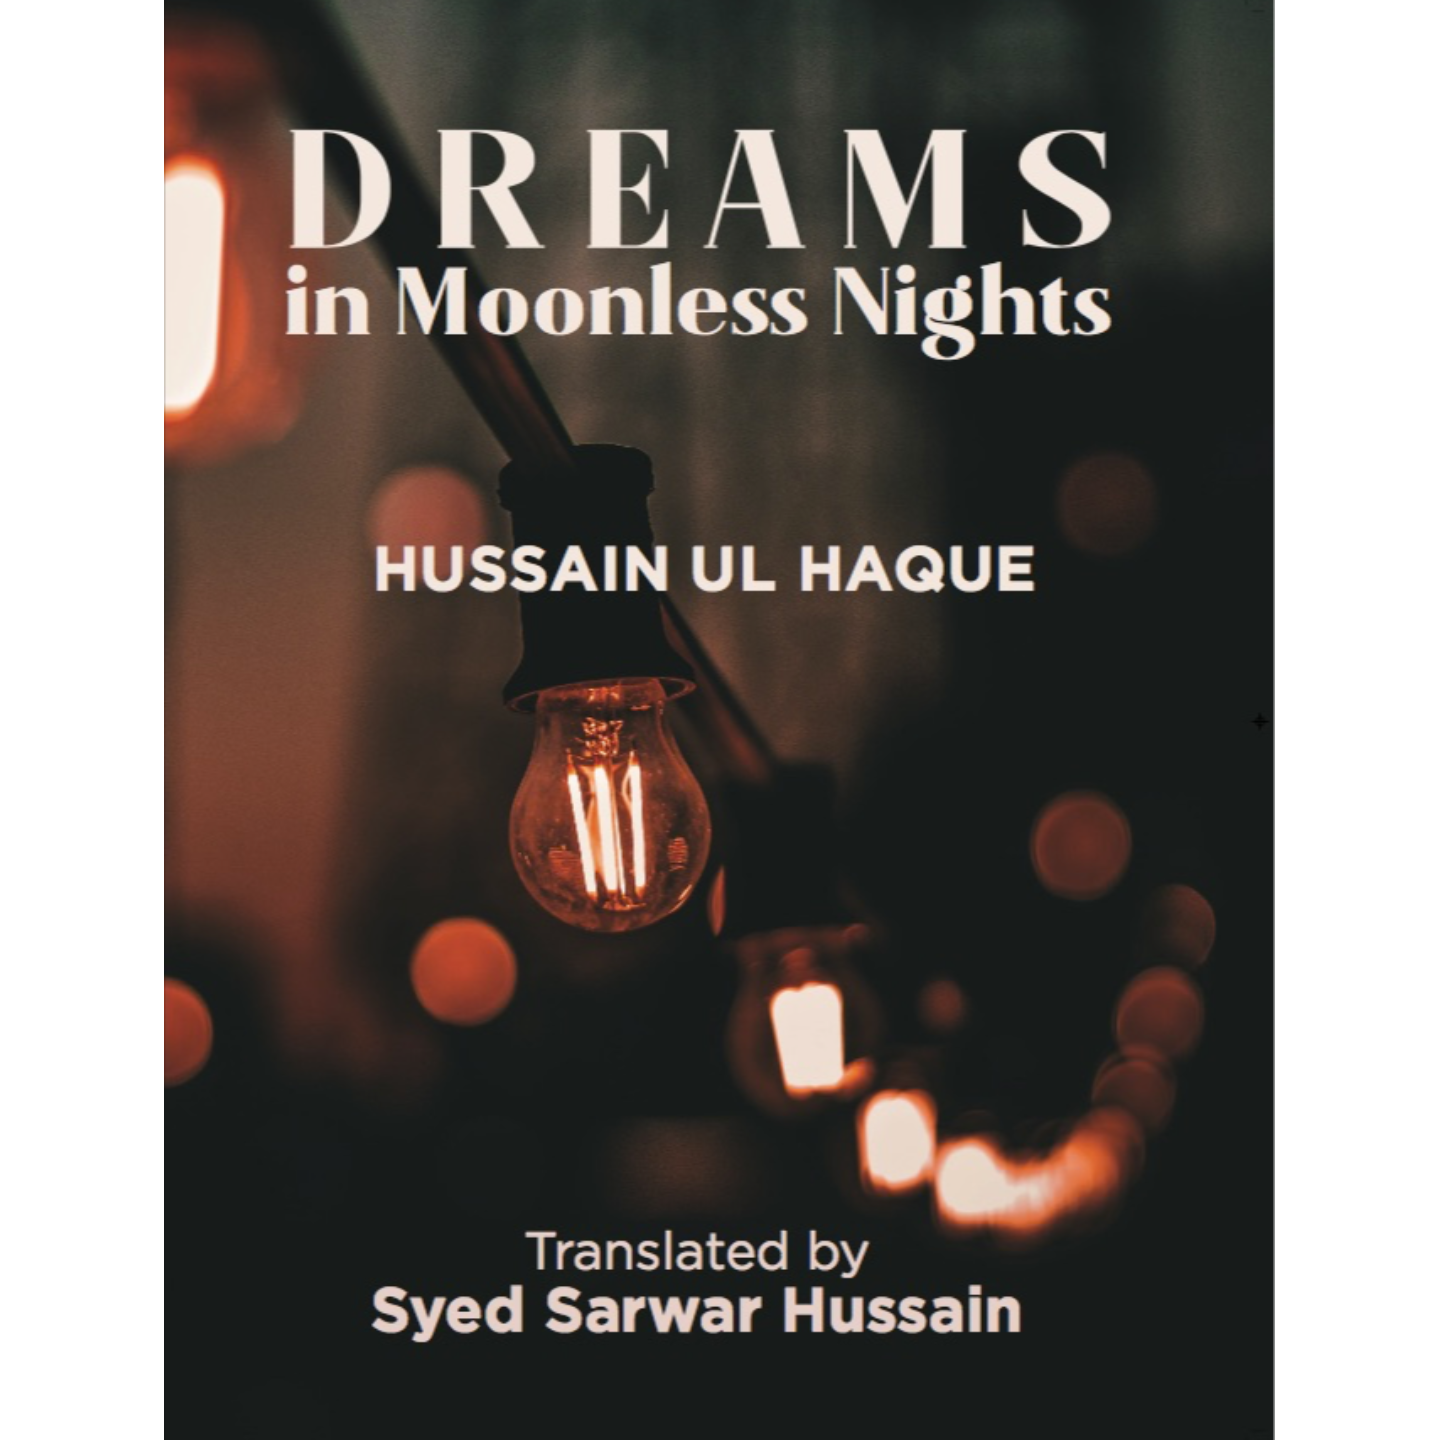 Dreams in Moonless Night by Hussain Ul Haque Eng. translation by Syed Sarwar Hussain